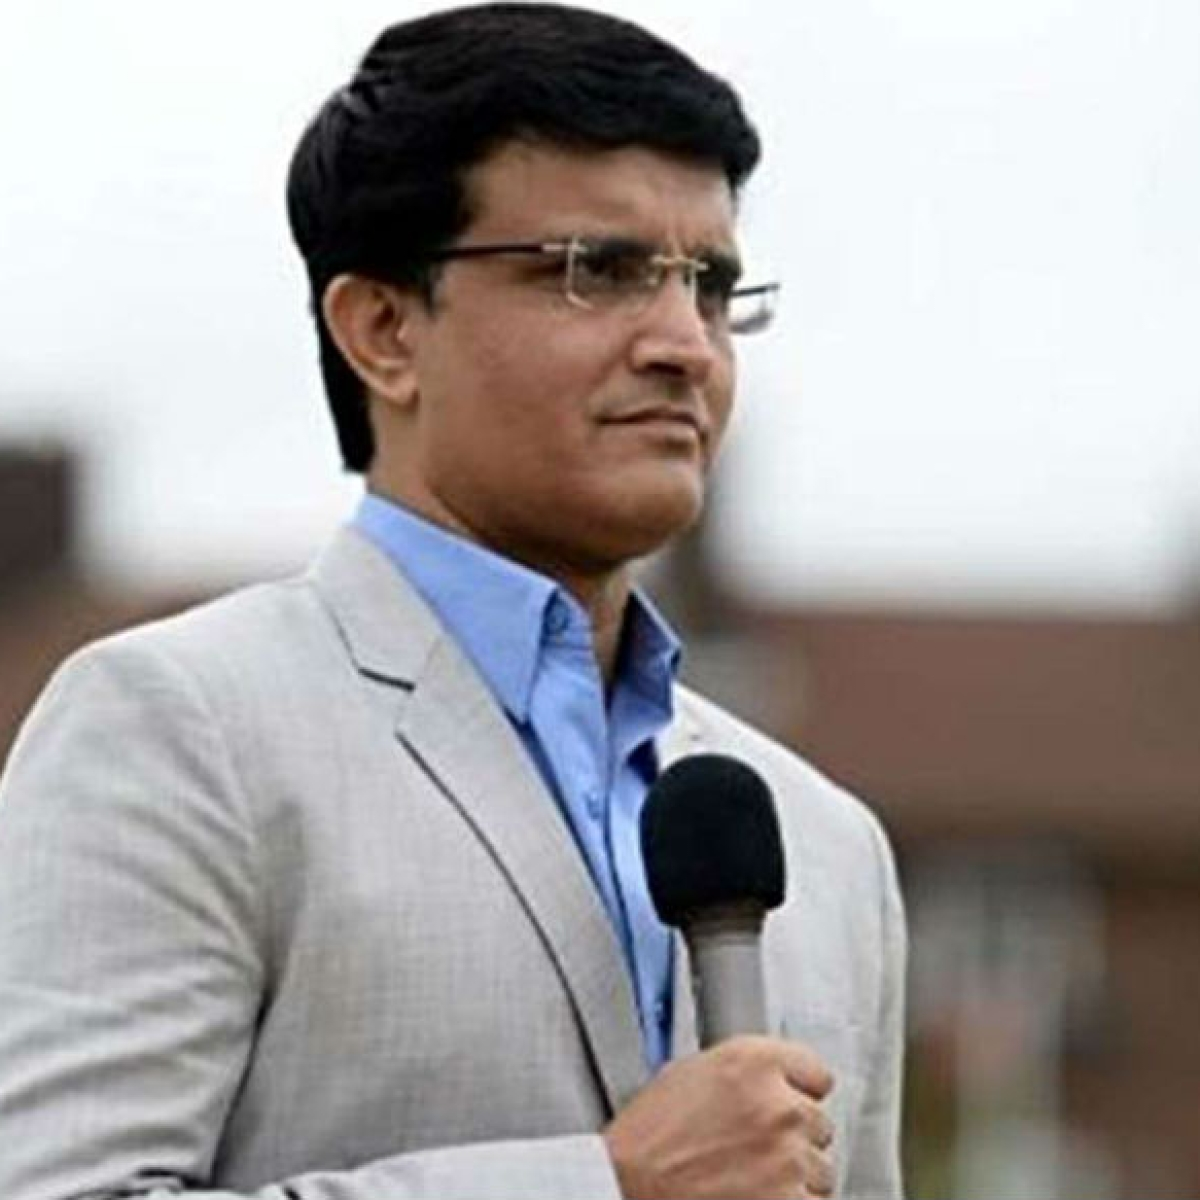 Summer Olympics 2020: Sourav Ganguly invited to join Indian contingent as Goodwill Ambassador